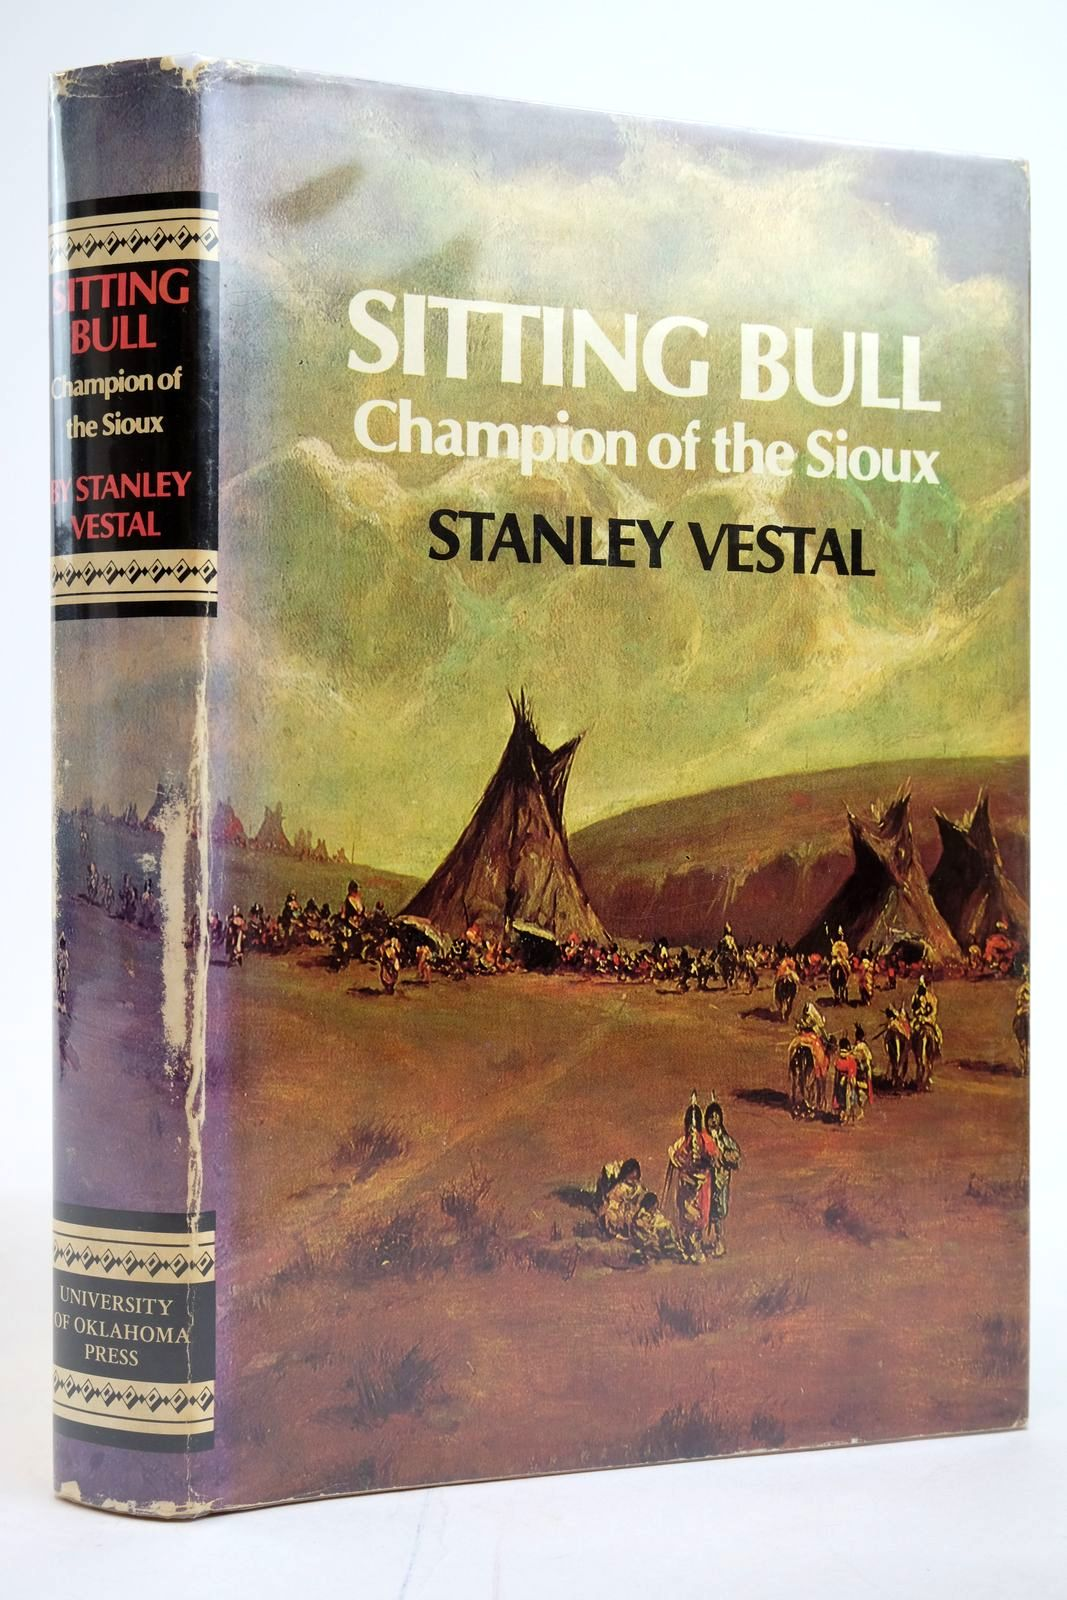 Photo of SITTING BULL: CHAMPION OF THE SIOUX written by Vestal, Stanley published by University of Oklahoma Press (STOCK CODE: 2135267)  for sale by Stella & Rose's Books